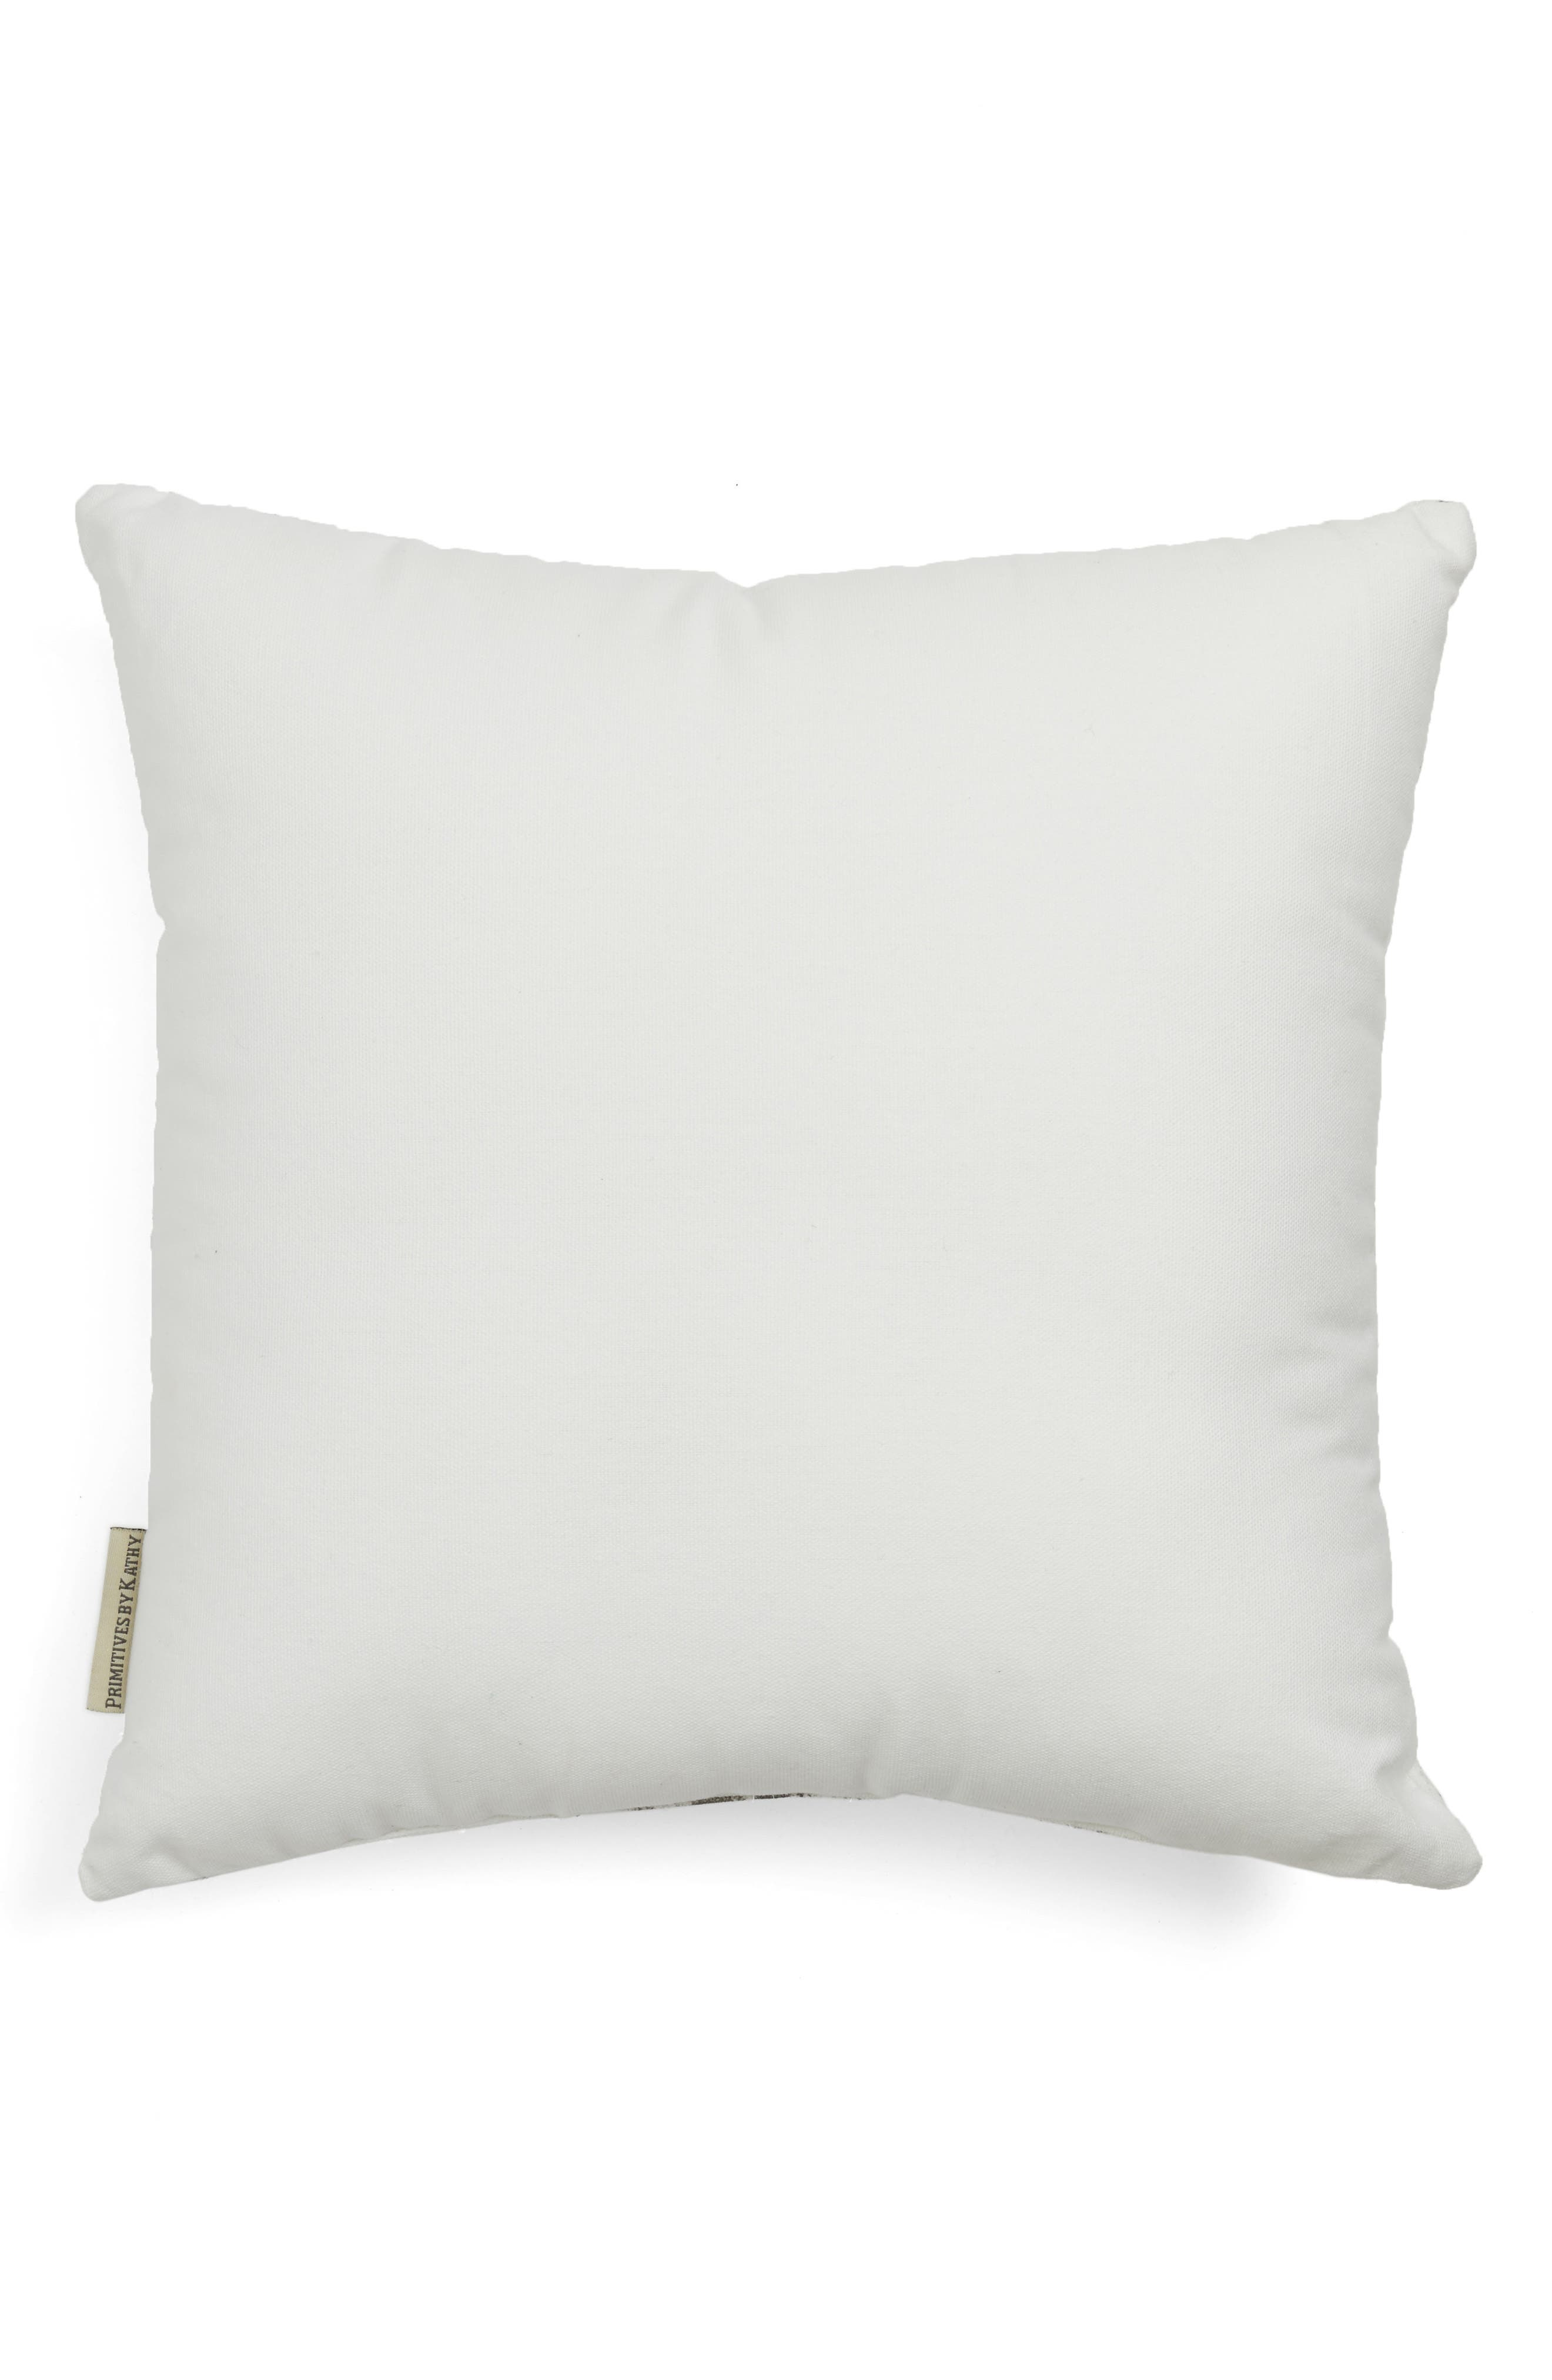 Merry Christmas Accent Pillow,                             Alternate thumbnail 2, color,                             020